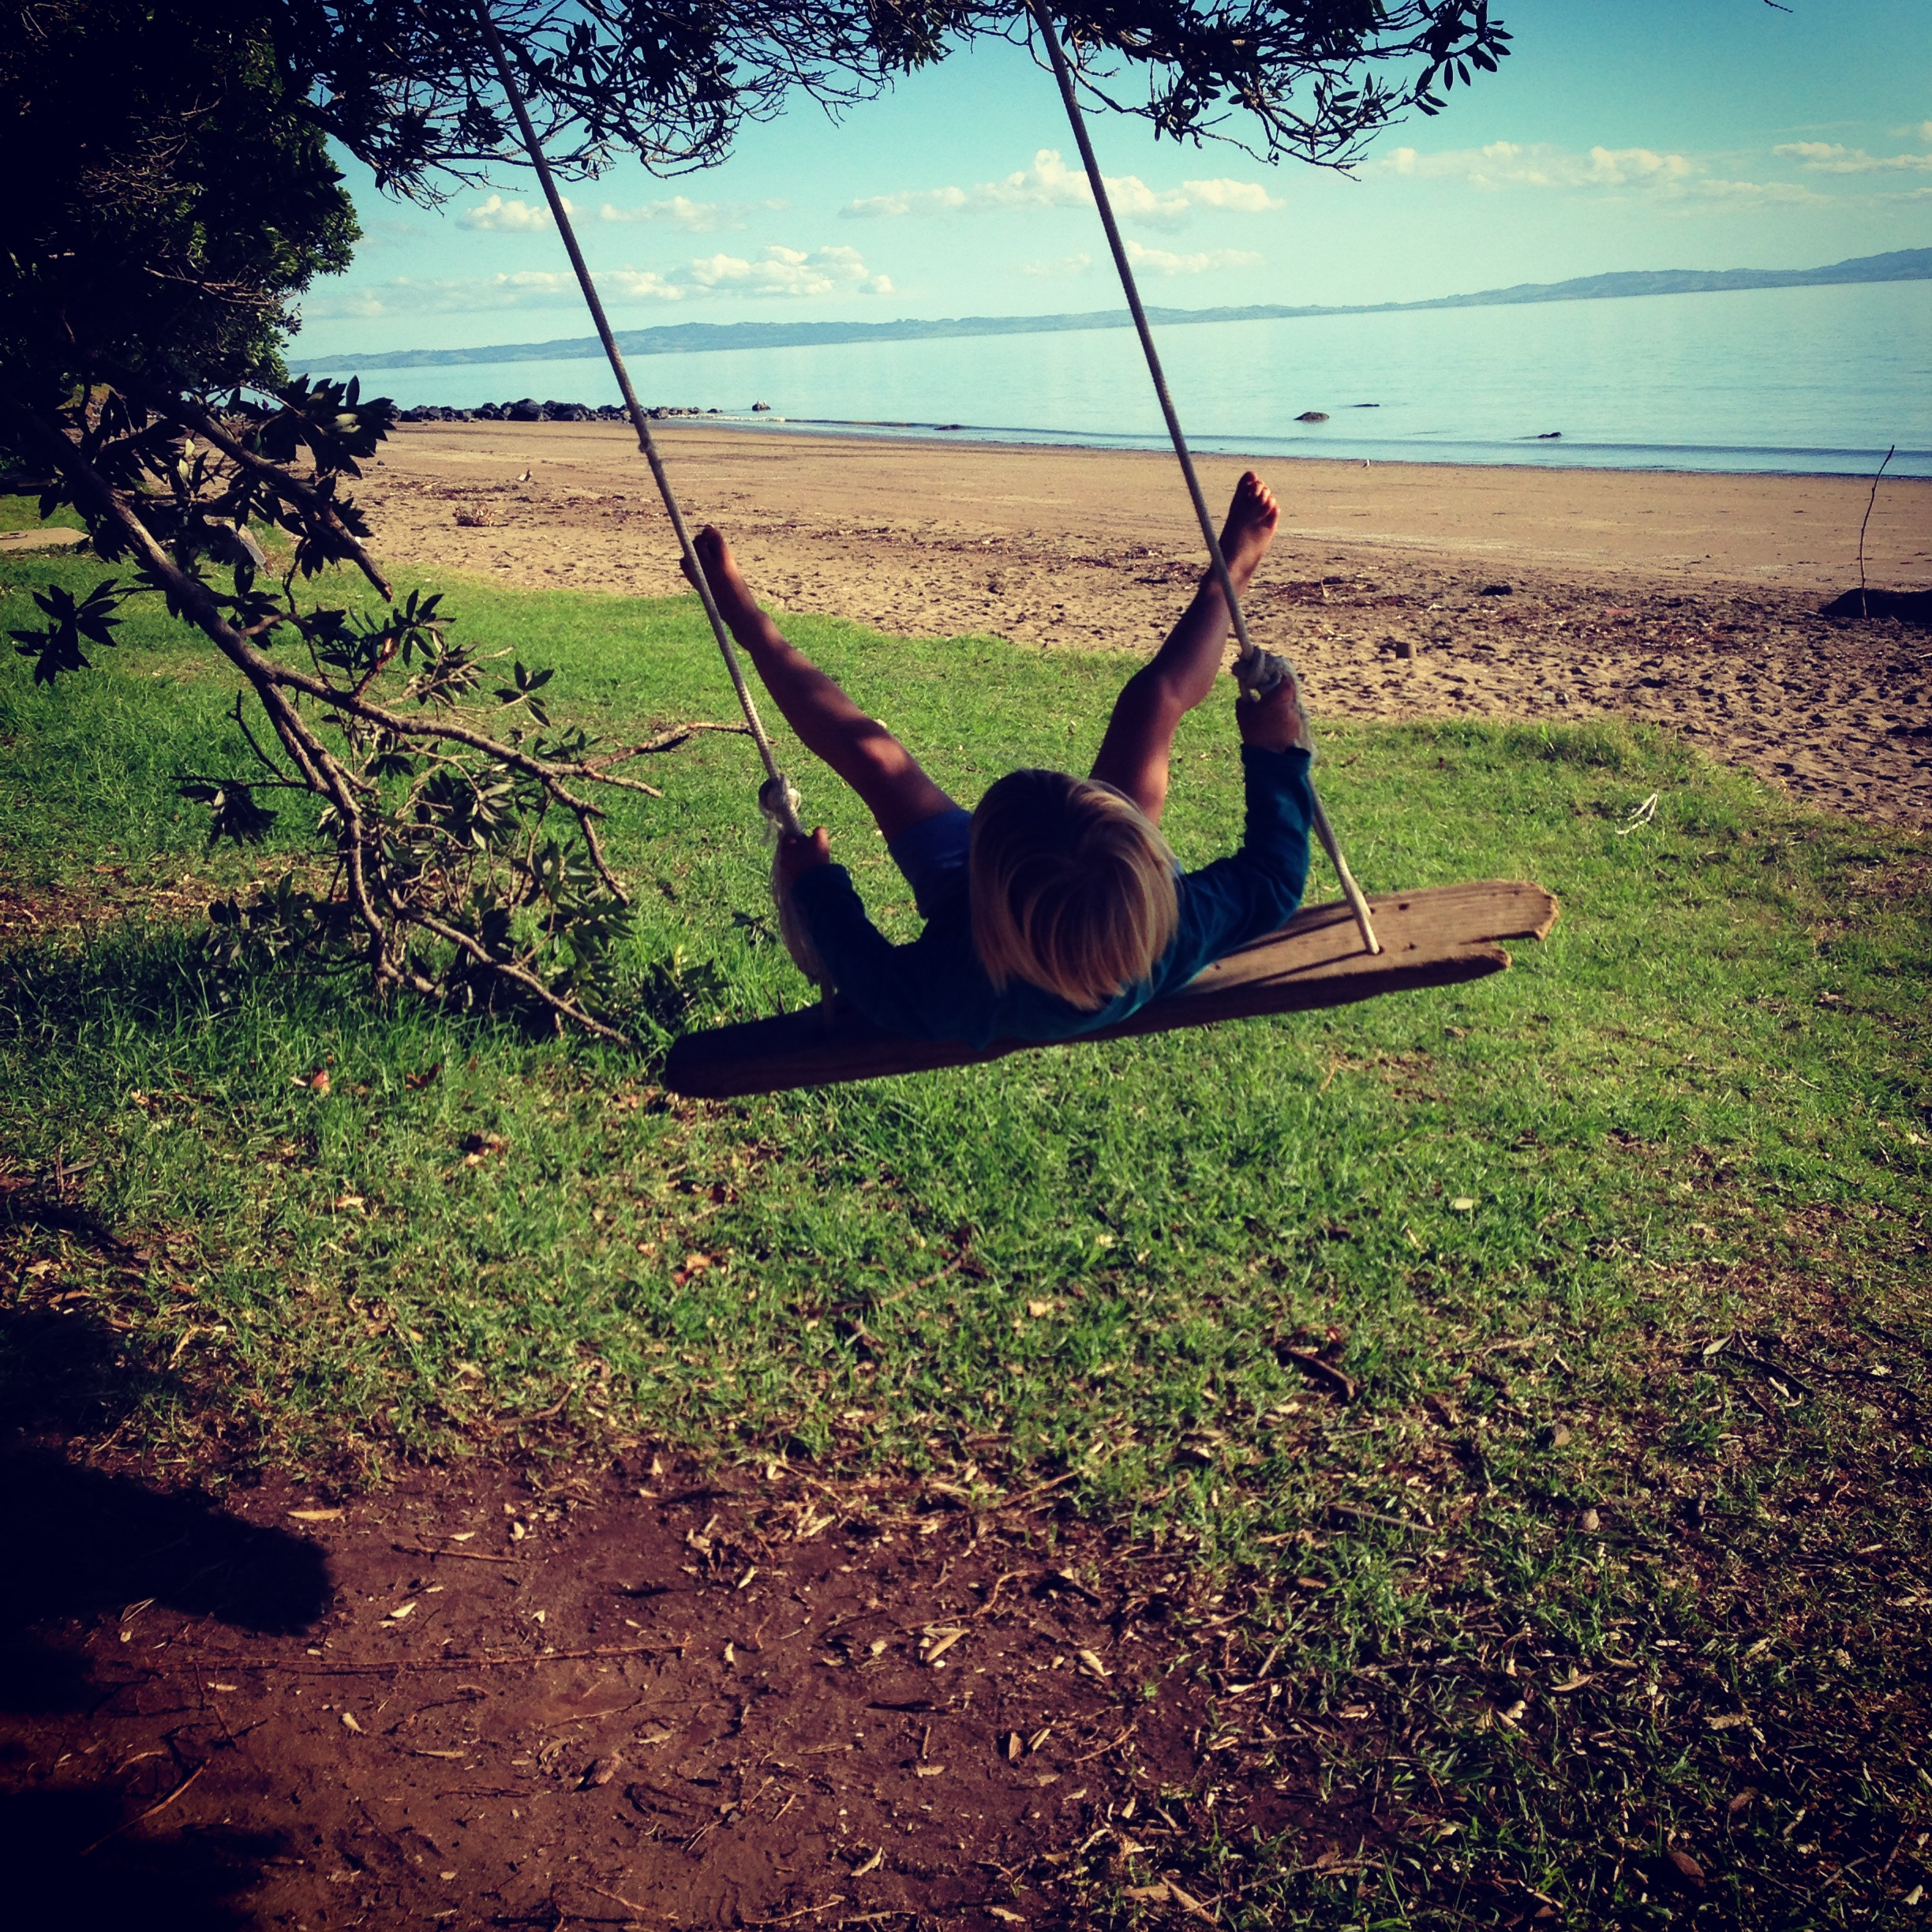 A day in the life of an unschooling/ child right's respecting family